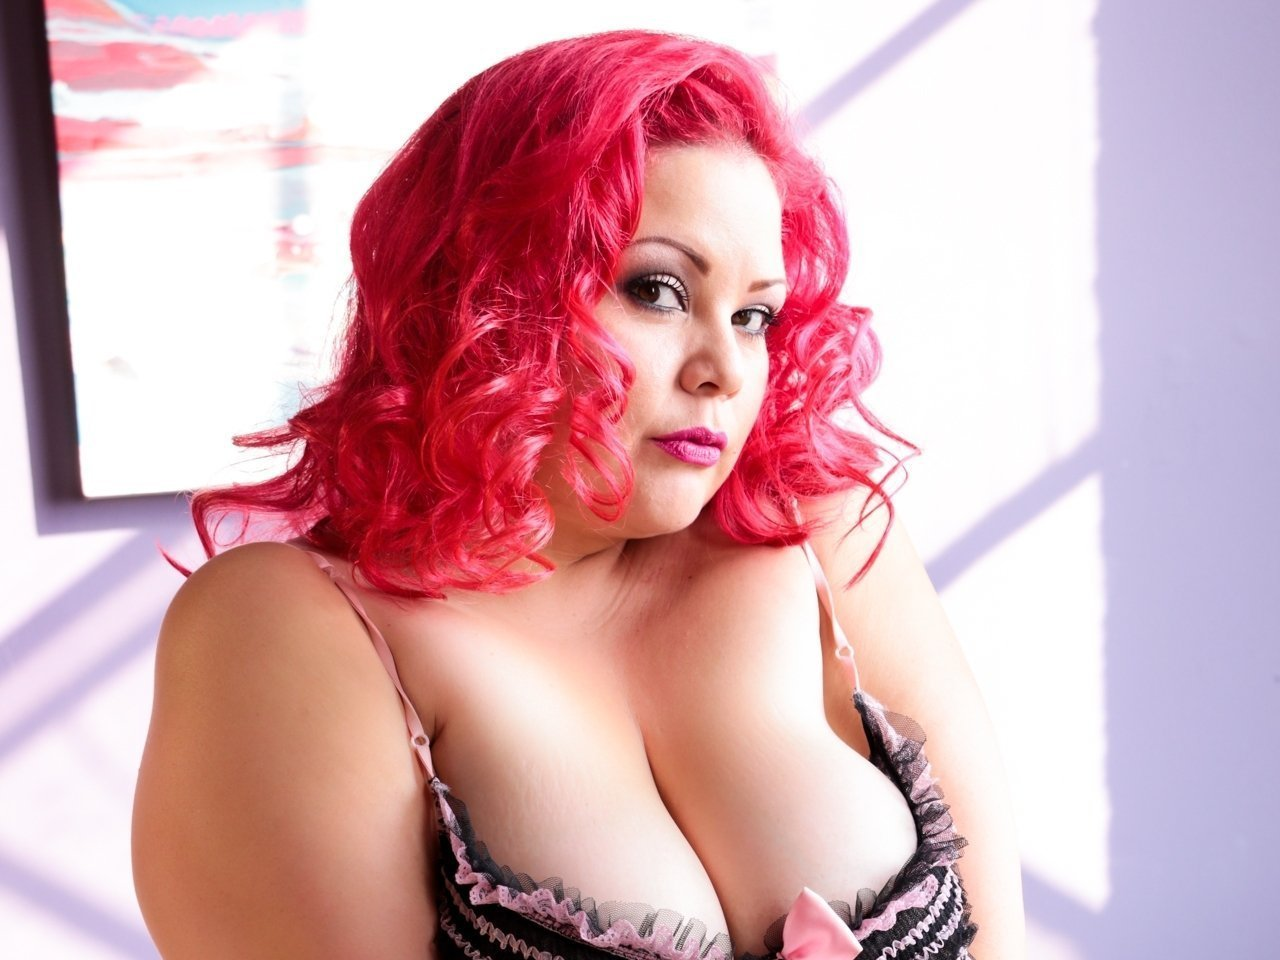 Redhead bbw legend april flores stuffs pussy